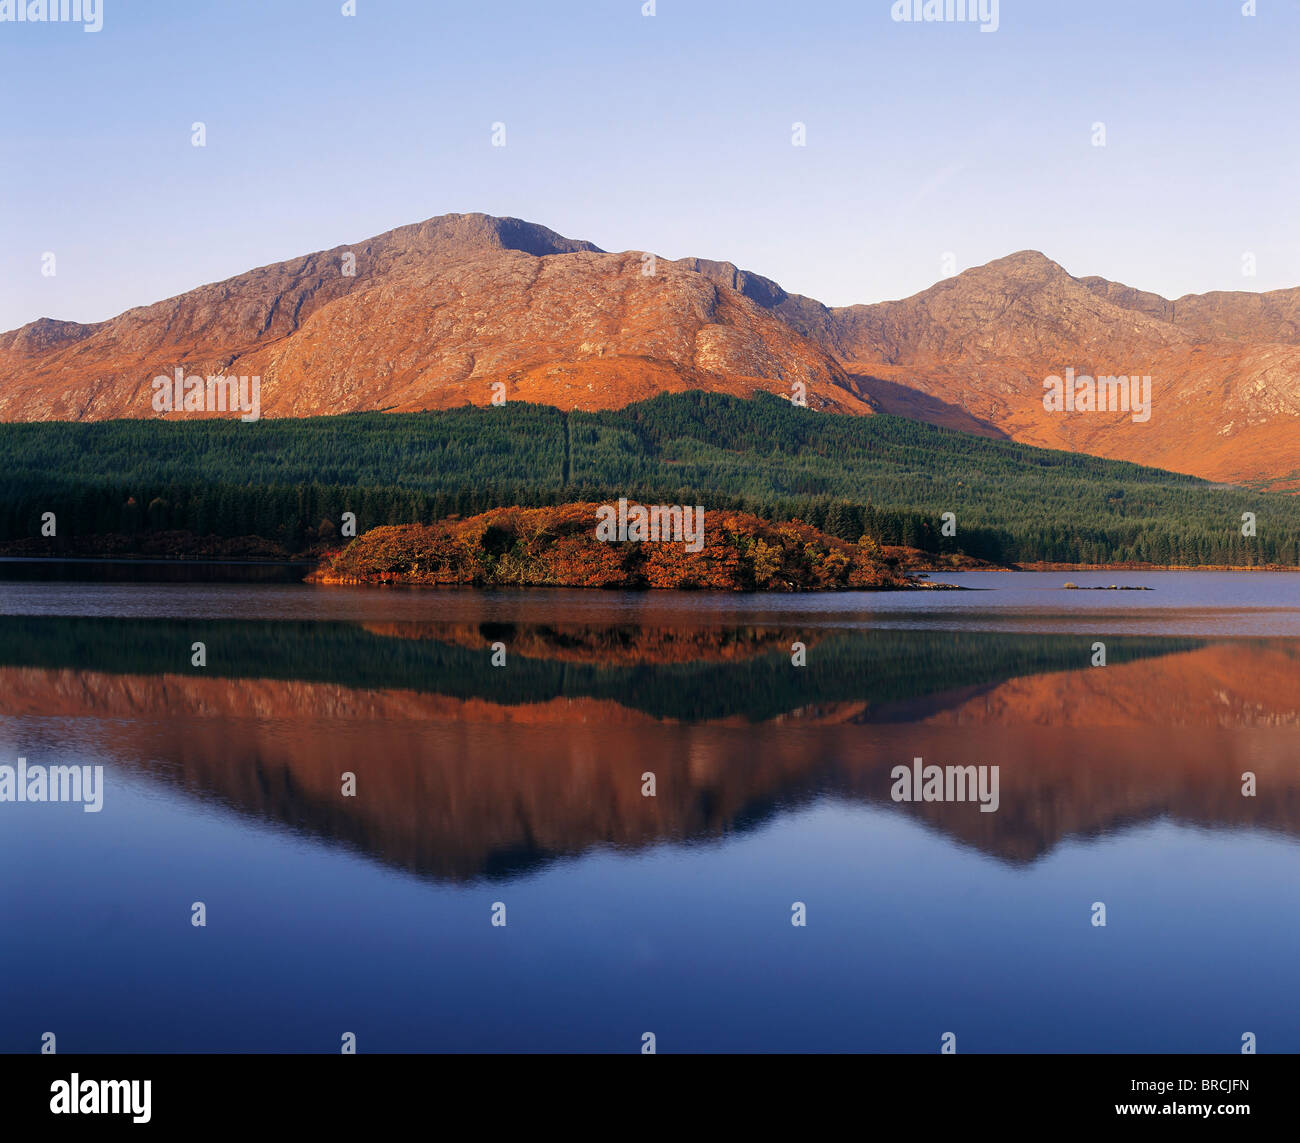 Twelve Bens, Connemara, County Galway, Ireland - Stock Image